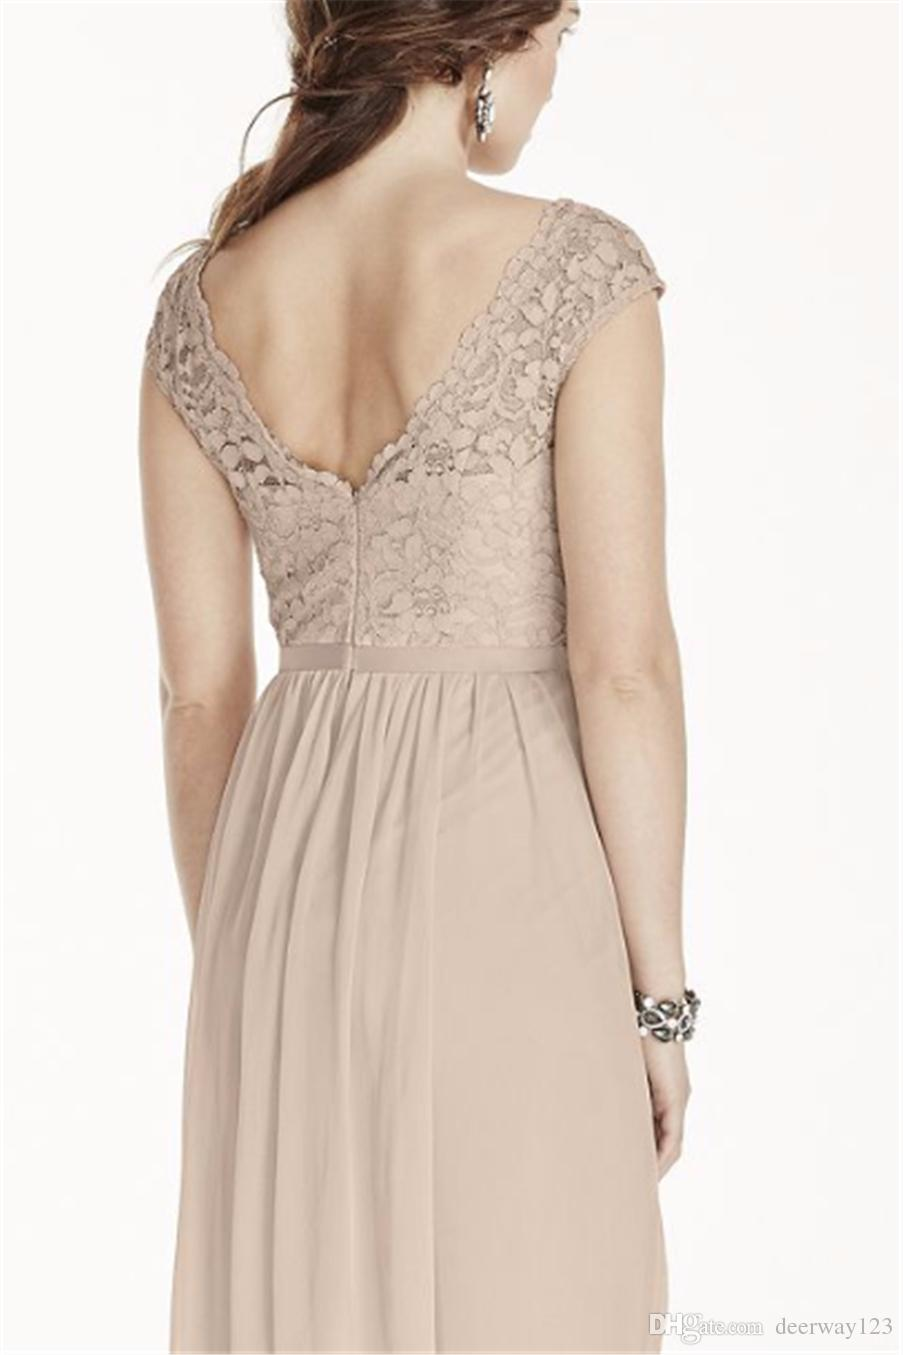 Short Lace and Chiffon Bridesmaid Dress with Illusion Neckline F17019 Knee Length Wedding Party Dress Evening Dress Formal Dresses